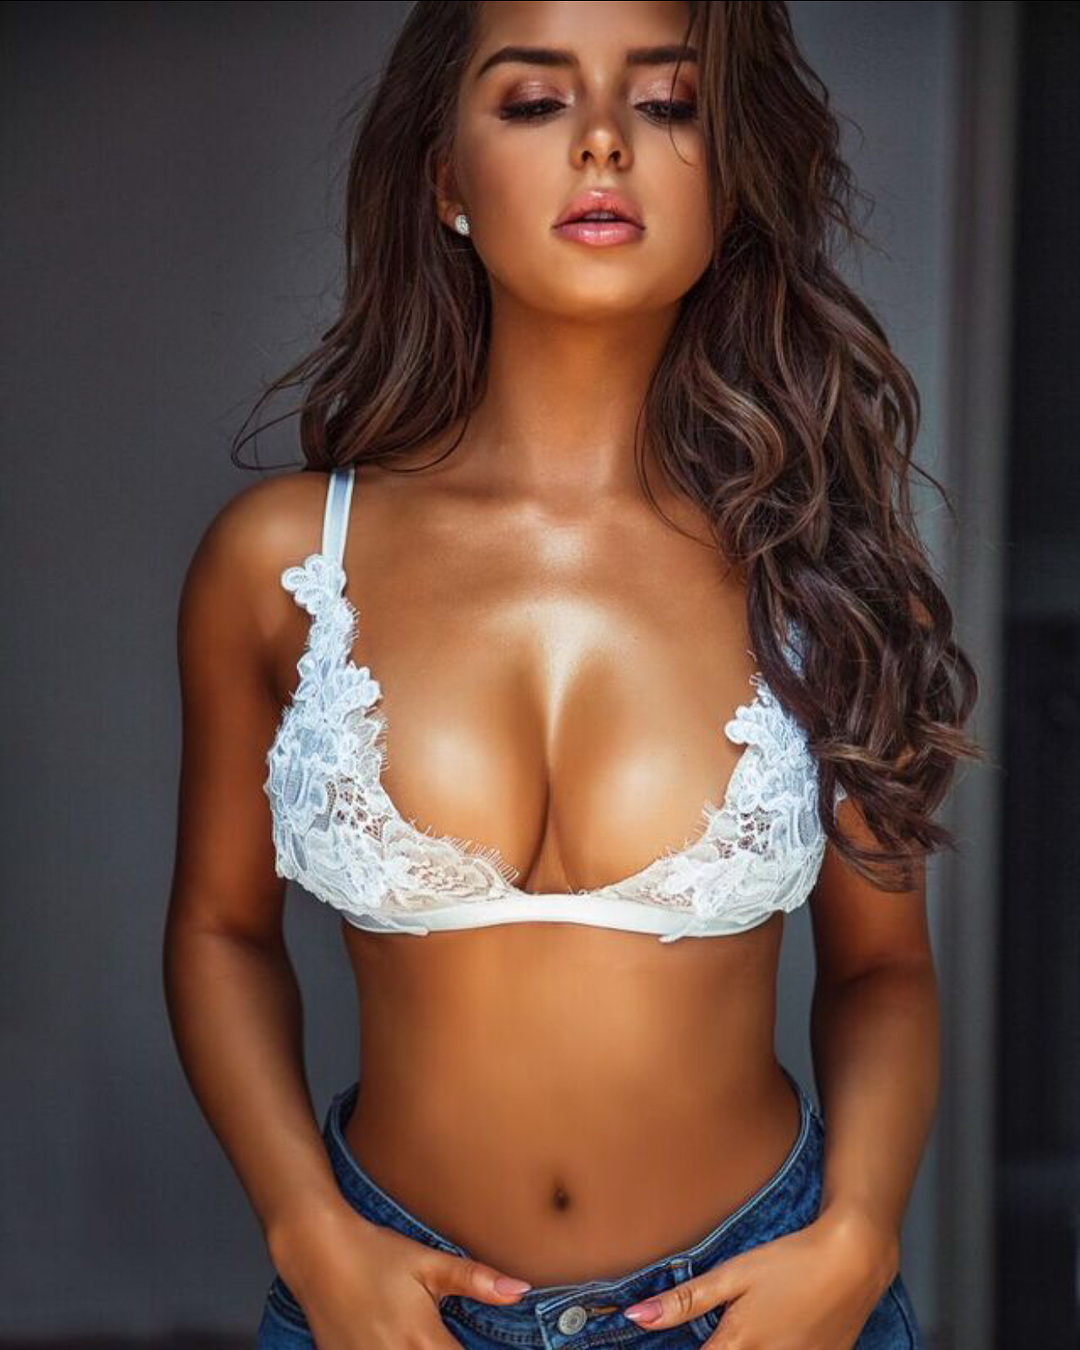 Demi Rose Mawby Hot Pictures